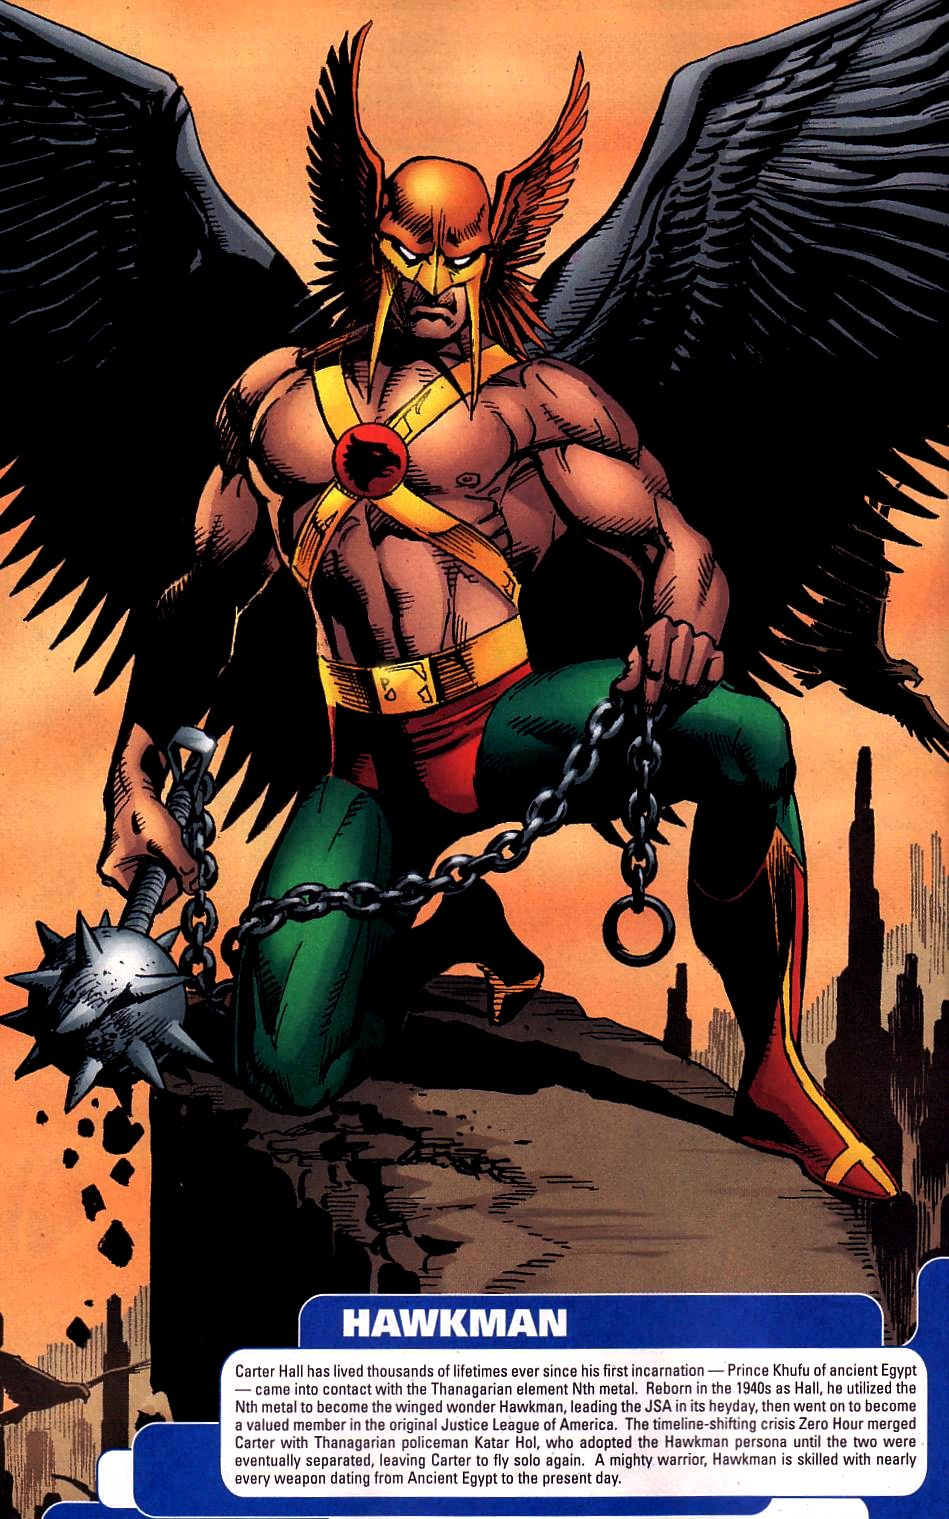 http://img4.wikia.nocookie.net/__cb20111129051104/marvel_dc/images/4/4e/Hawkman_0051.jpg